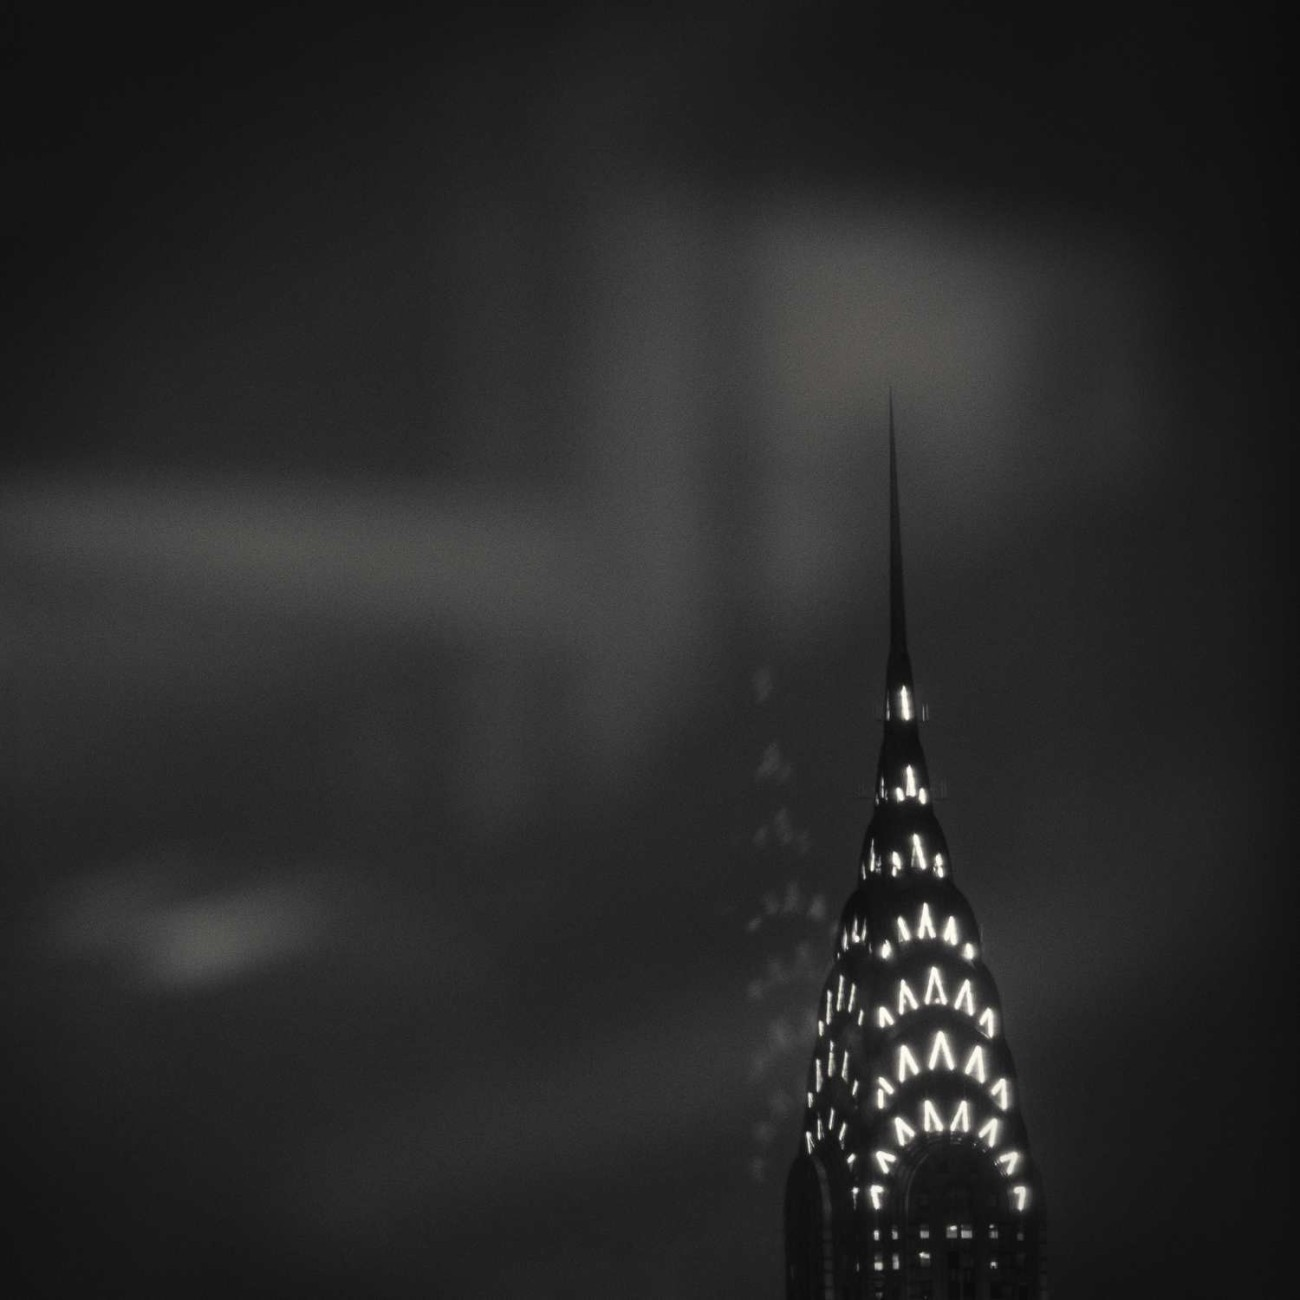 Chrysler Building night reflection, NY, 2015